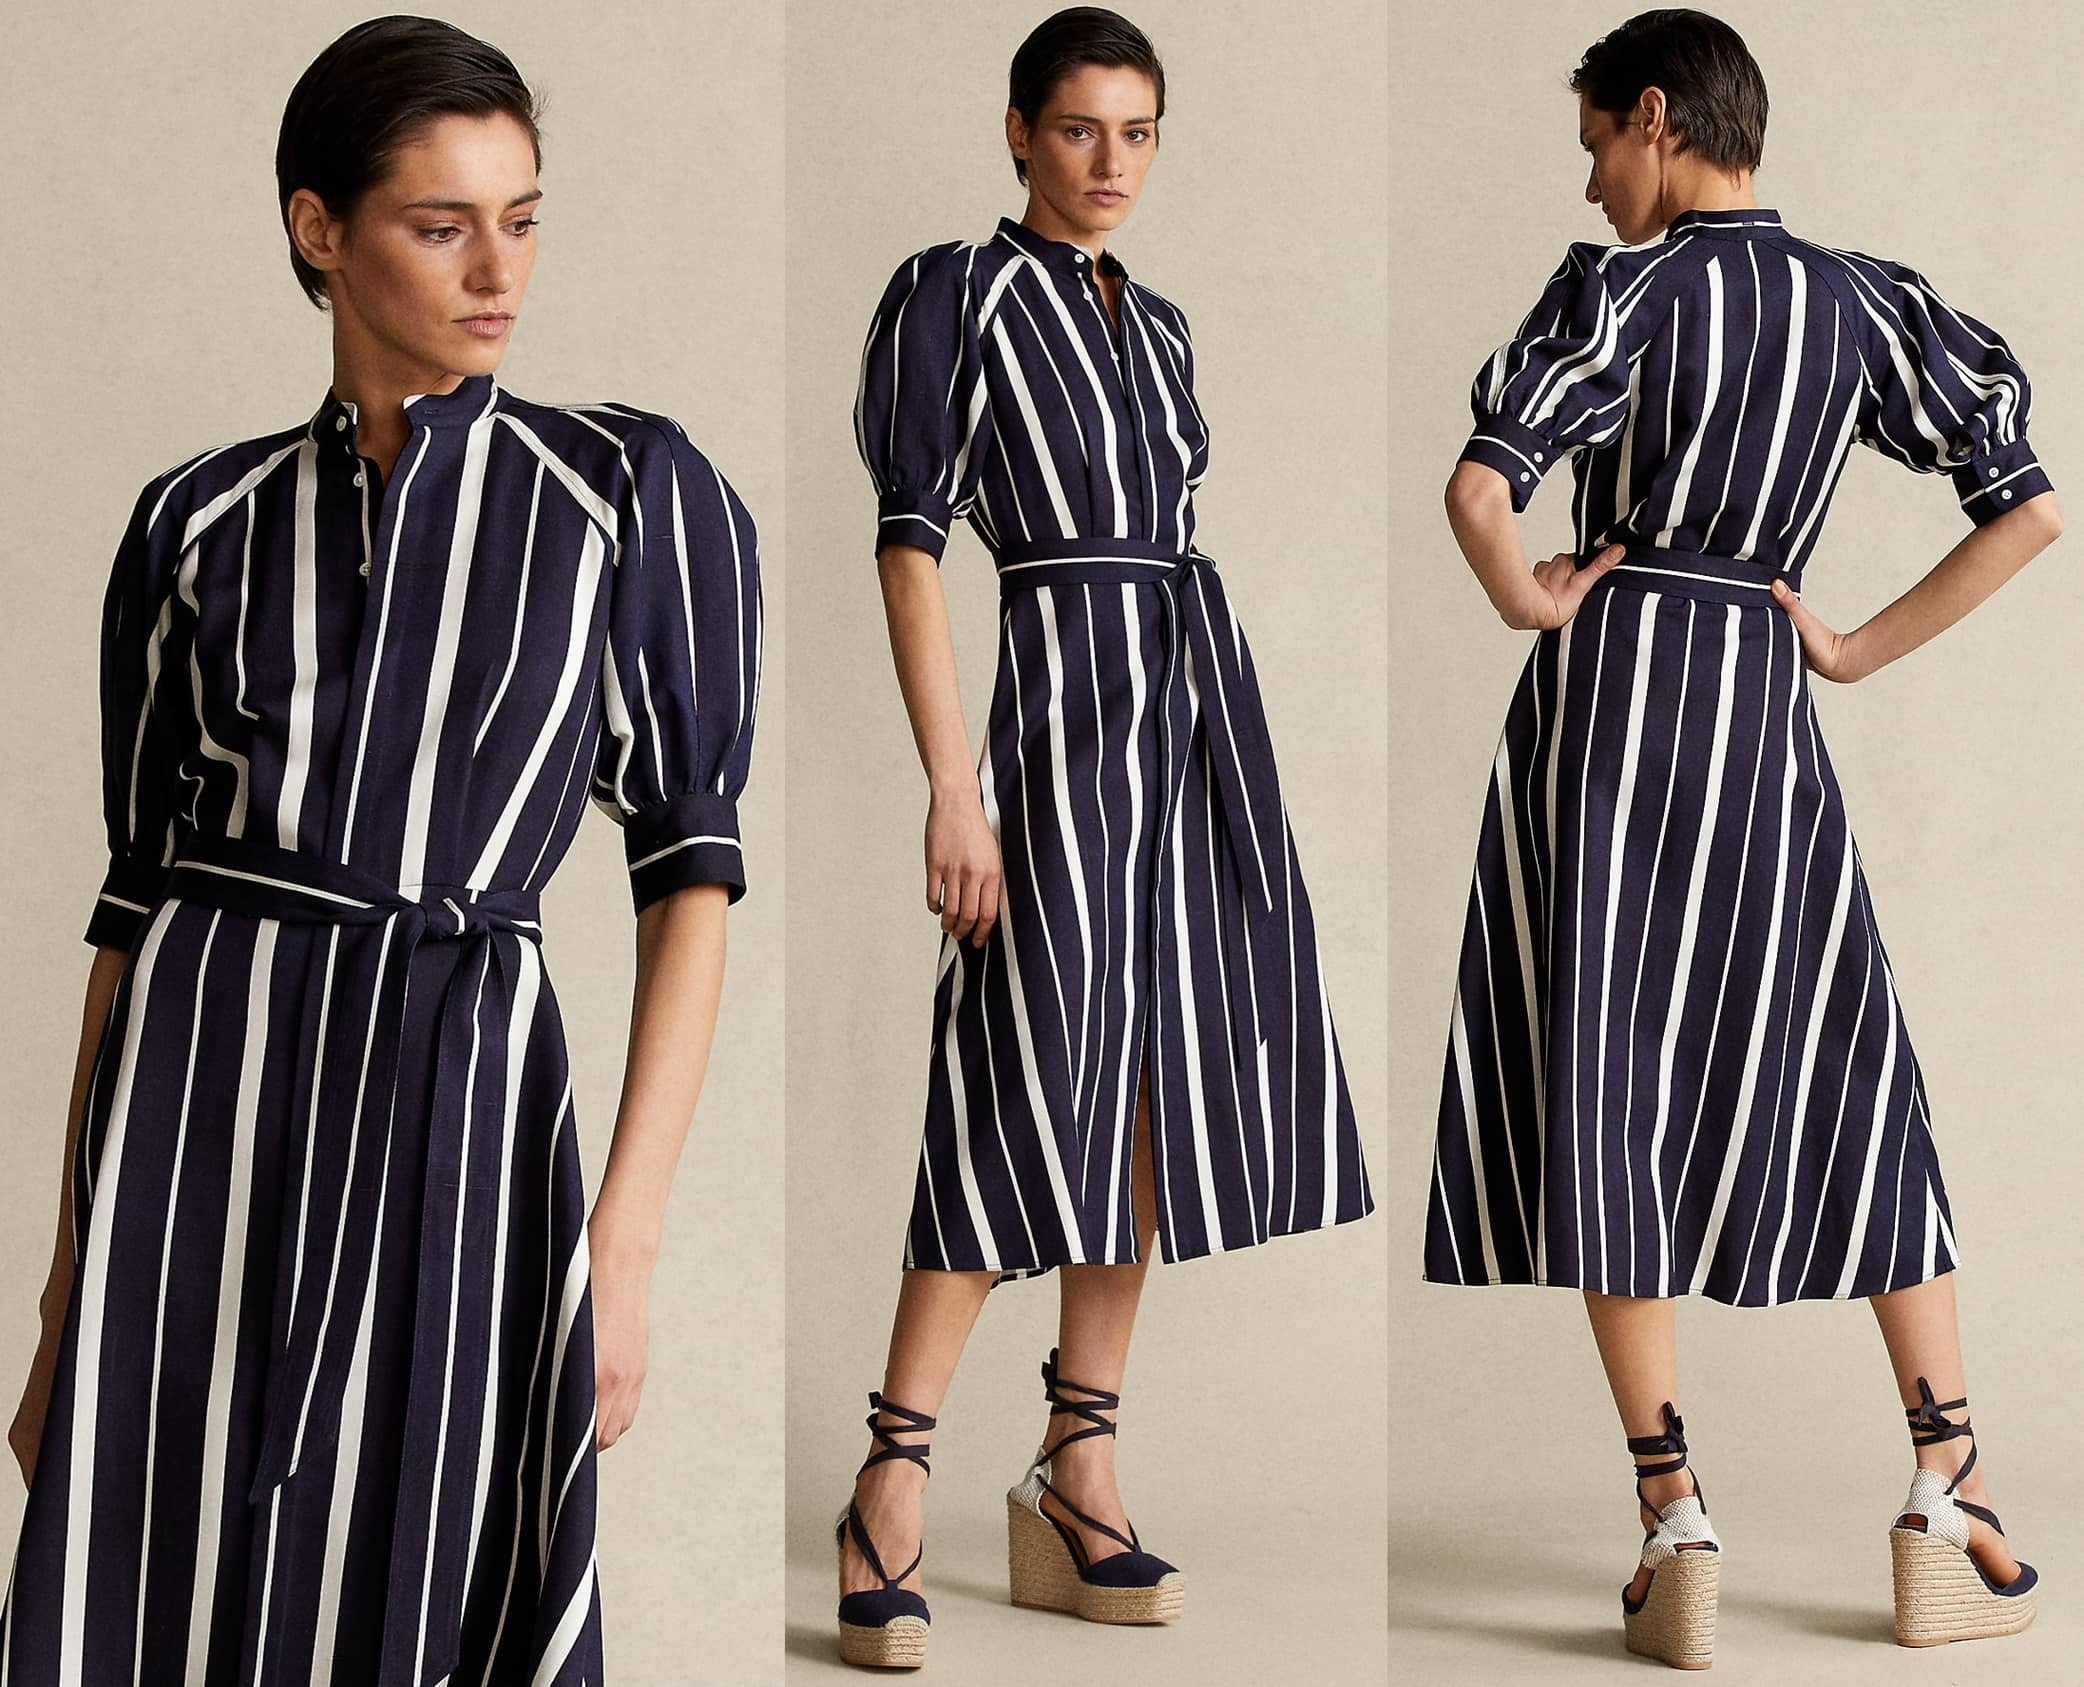 Cut for an A-line silhouette, this navy/cream stripe dress is crafted from pure silk for a fluid drape and easy movement